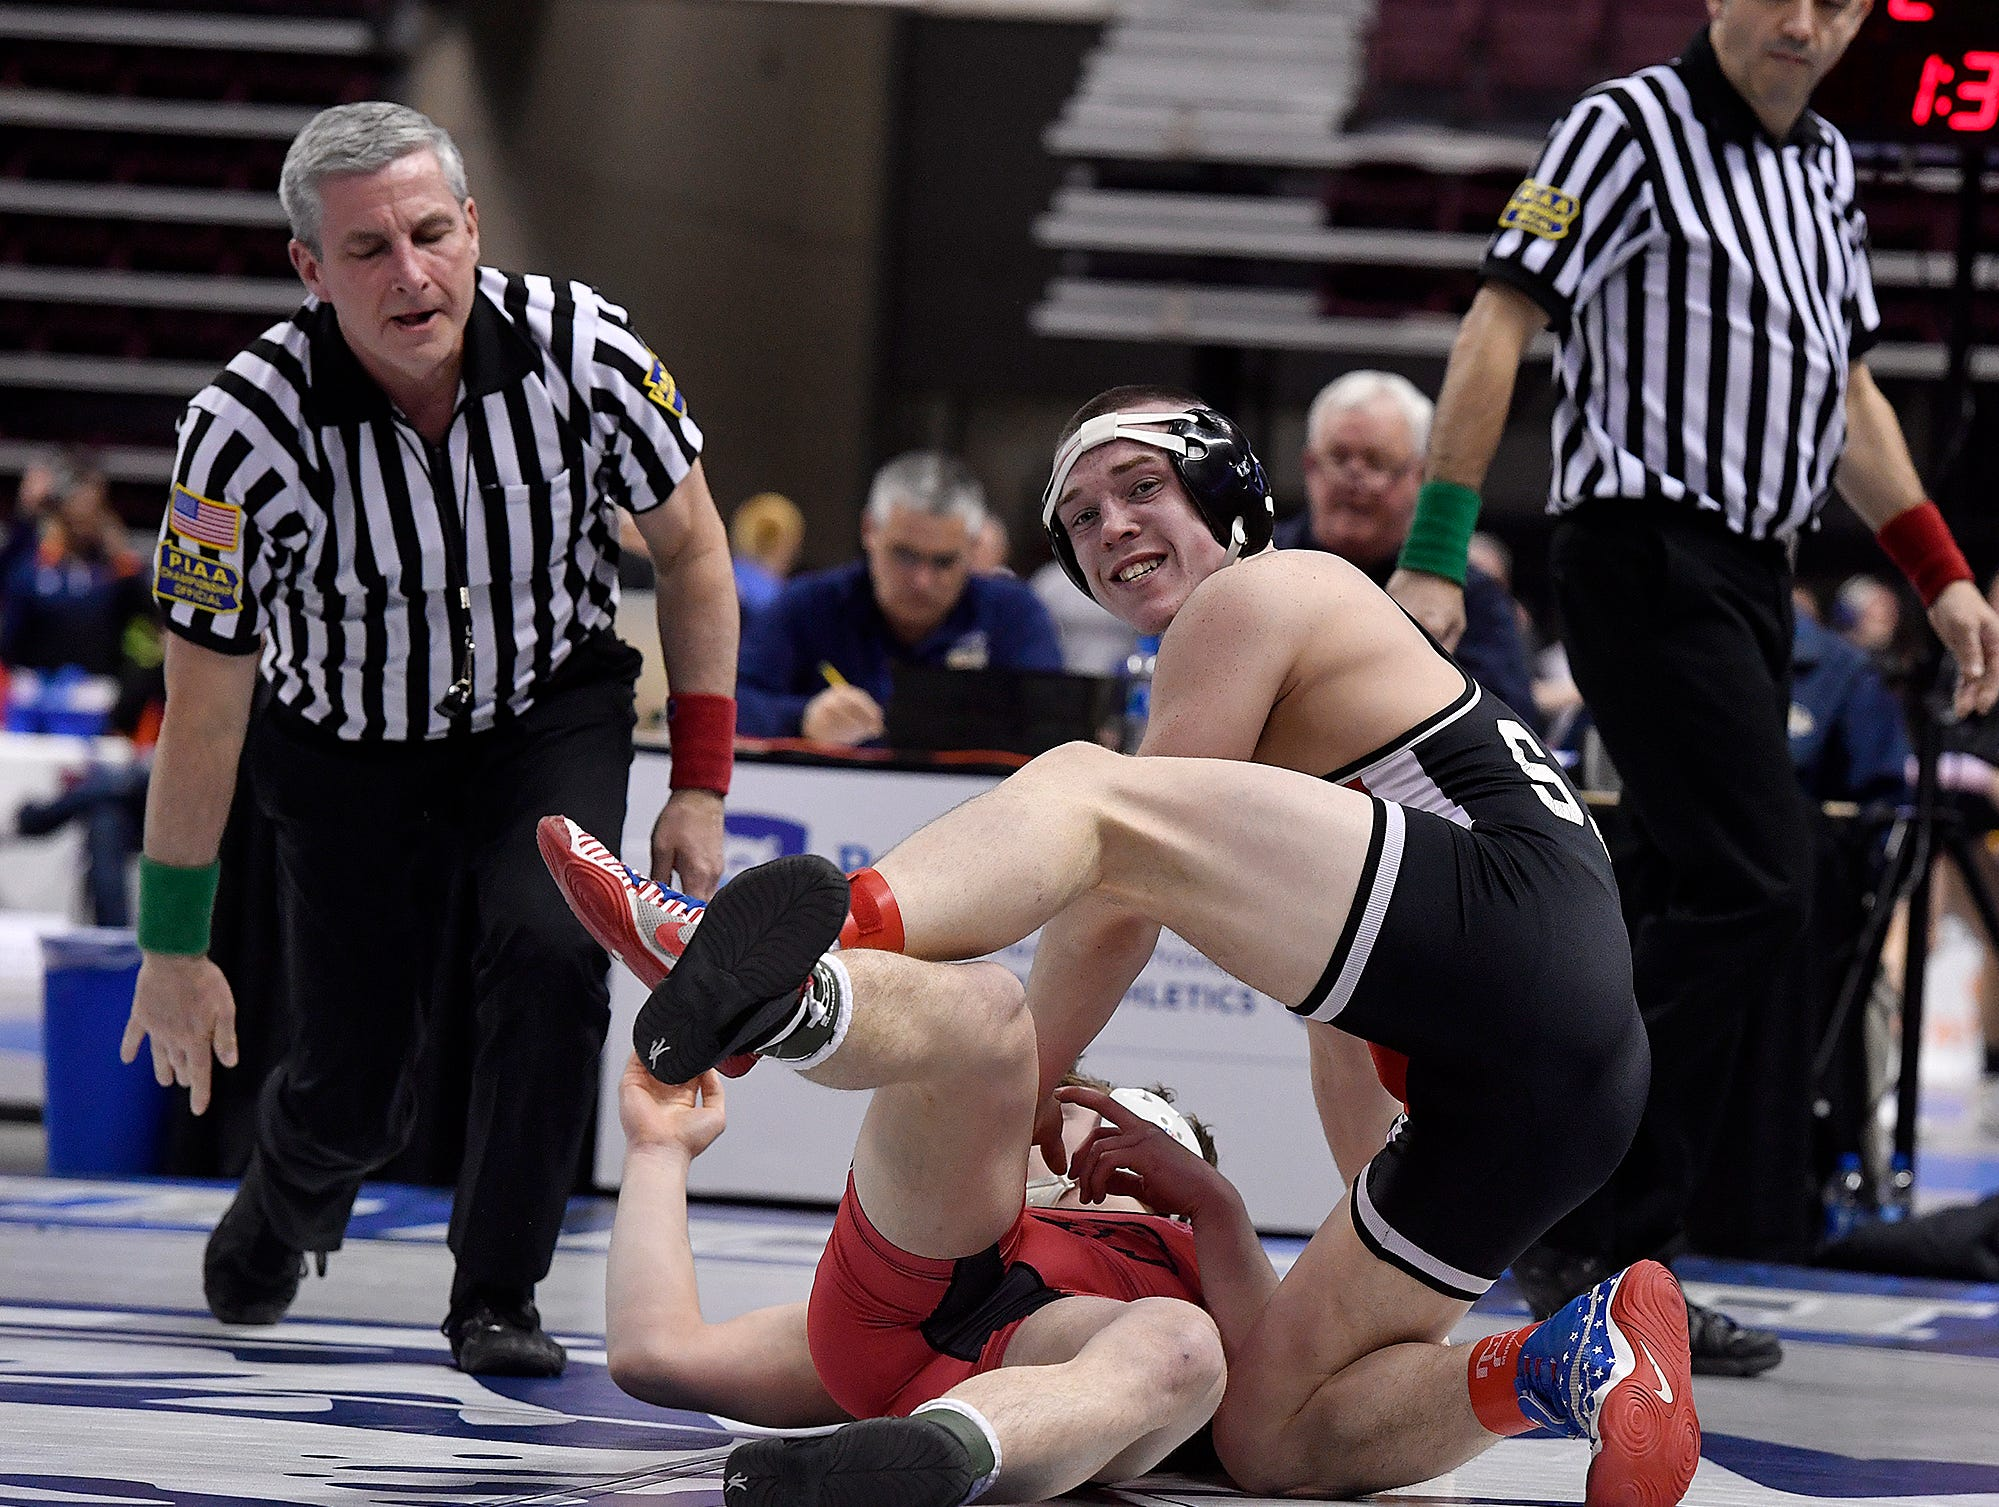 Colby Rome of Susquehannock looks back to his coaches after pinning Brett Brejdor of Boyertown in the 152 pound prelim of the PIAA Class 3-A Wrestling Championships, Thursday, March 7, 2019.John A. Pavoncello photo